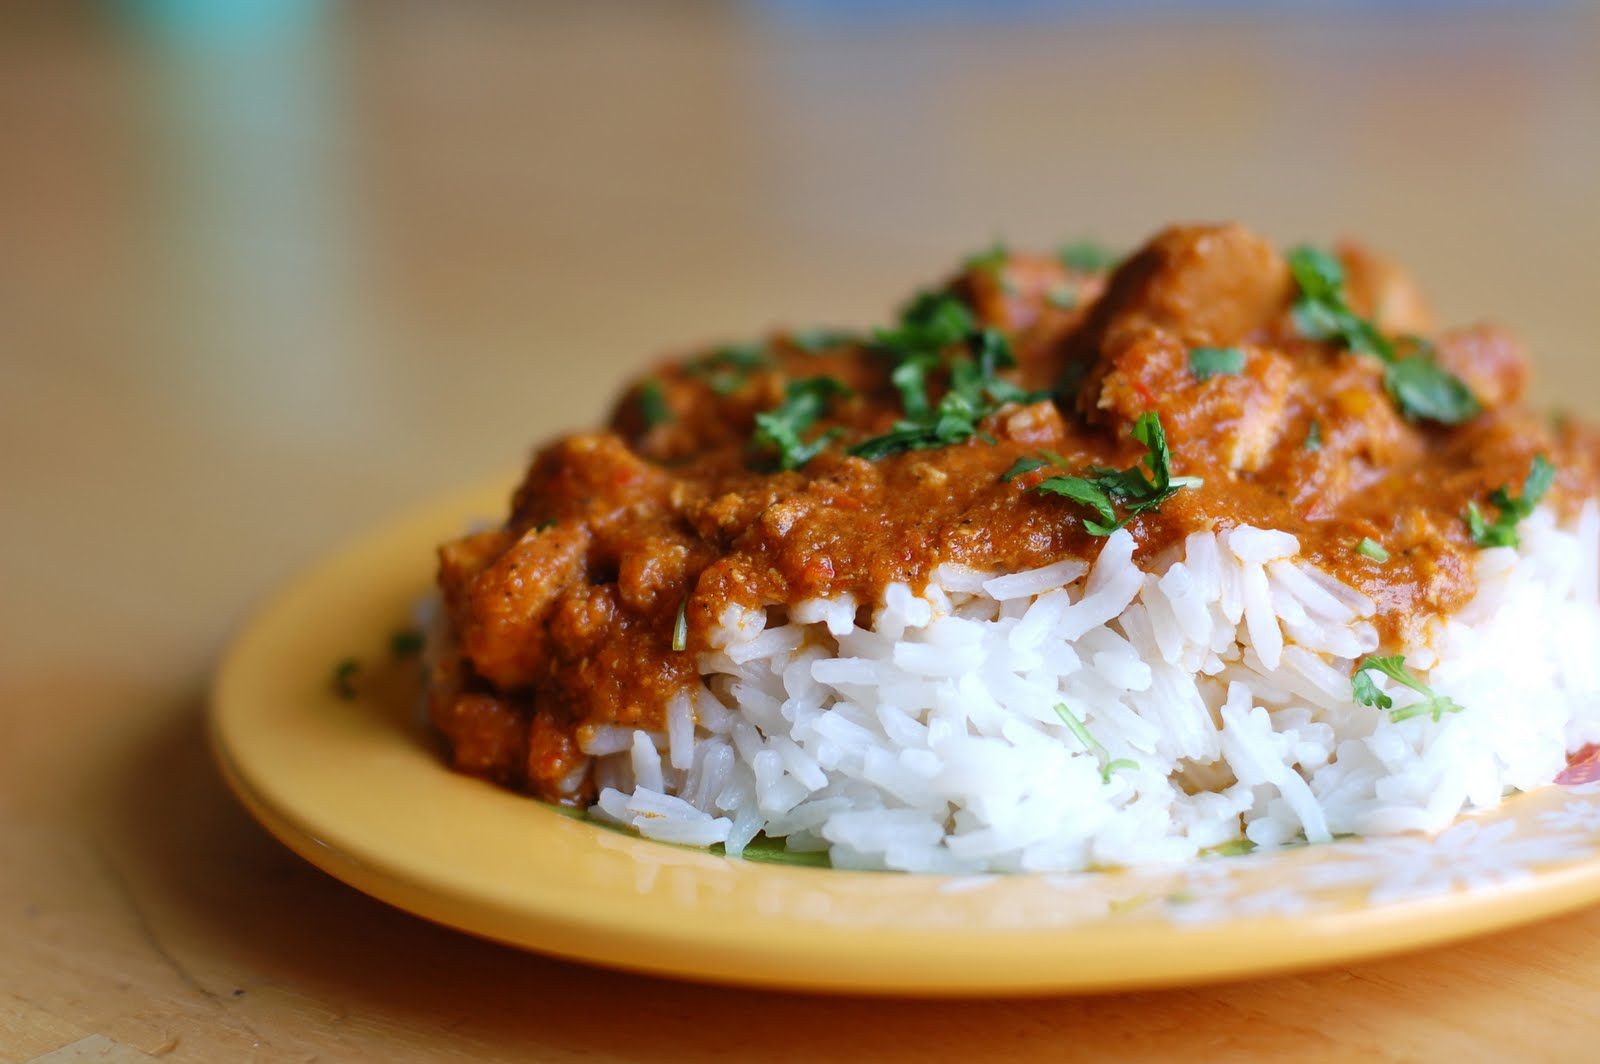 Barefoot and Baking: Crockpot Coconut Chicken Curry